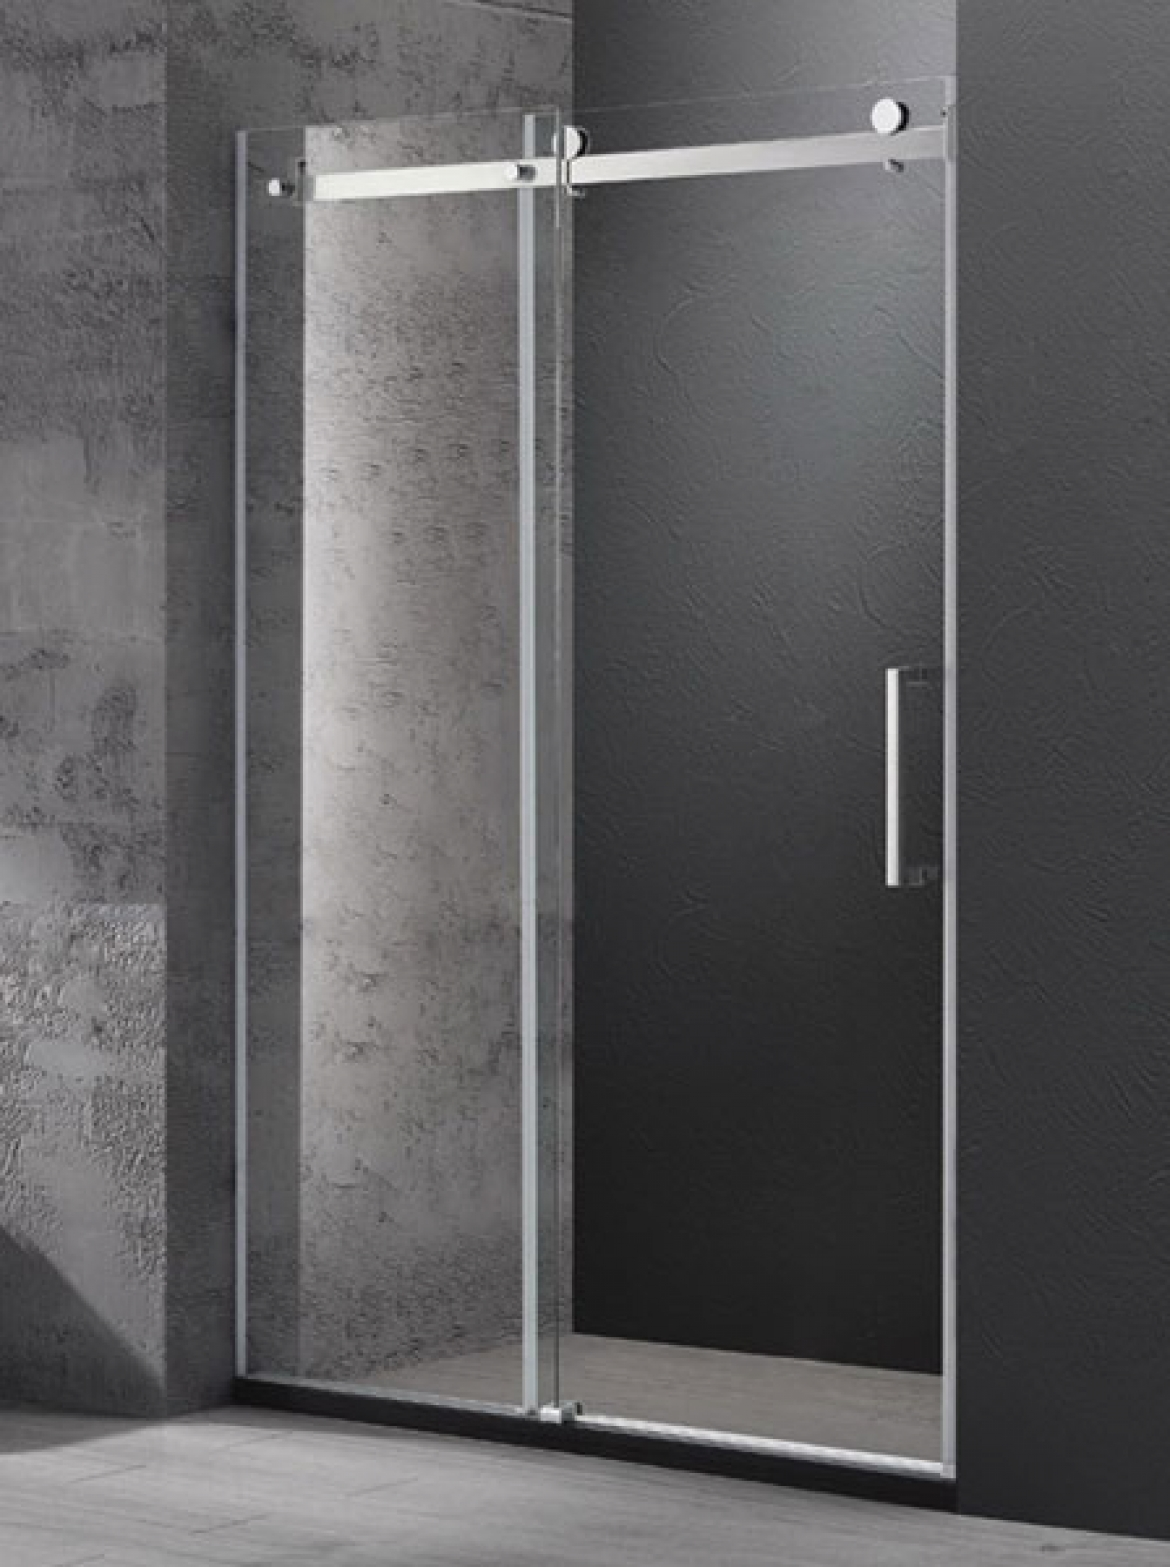 Wall to wall frameless sliding shower screen [1800 x 1950 mm]